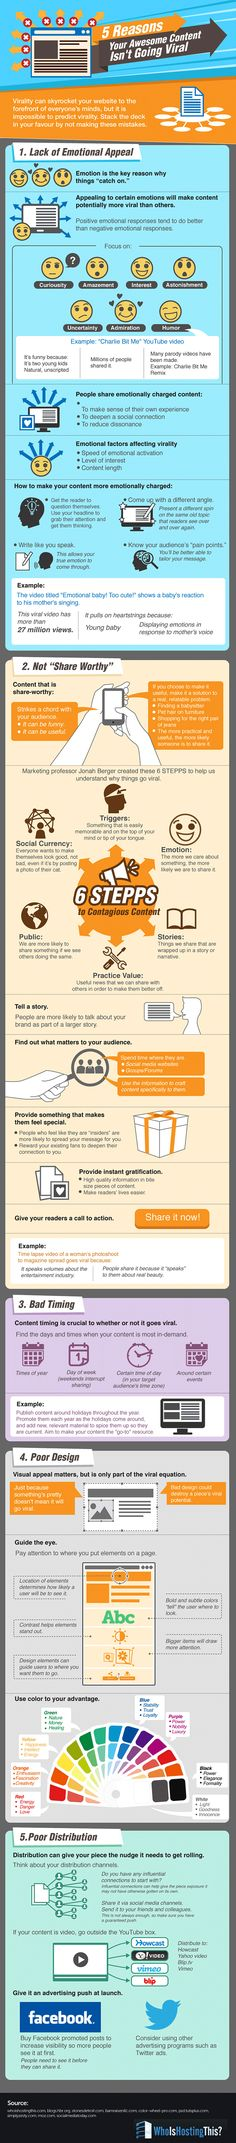 Content Marketing Infographic that gives tips for how to create content and posts that people feel compelled to share.